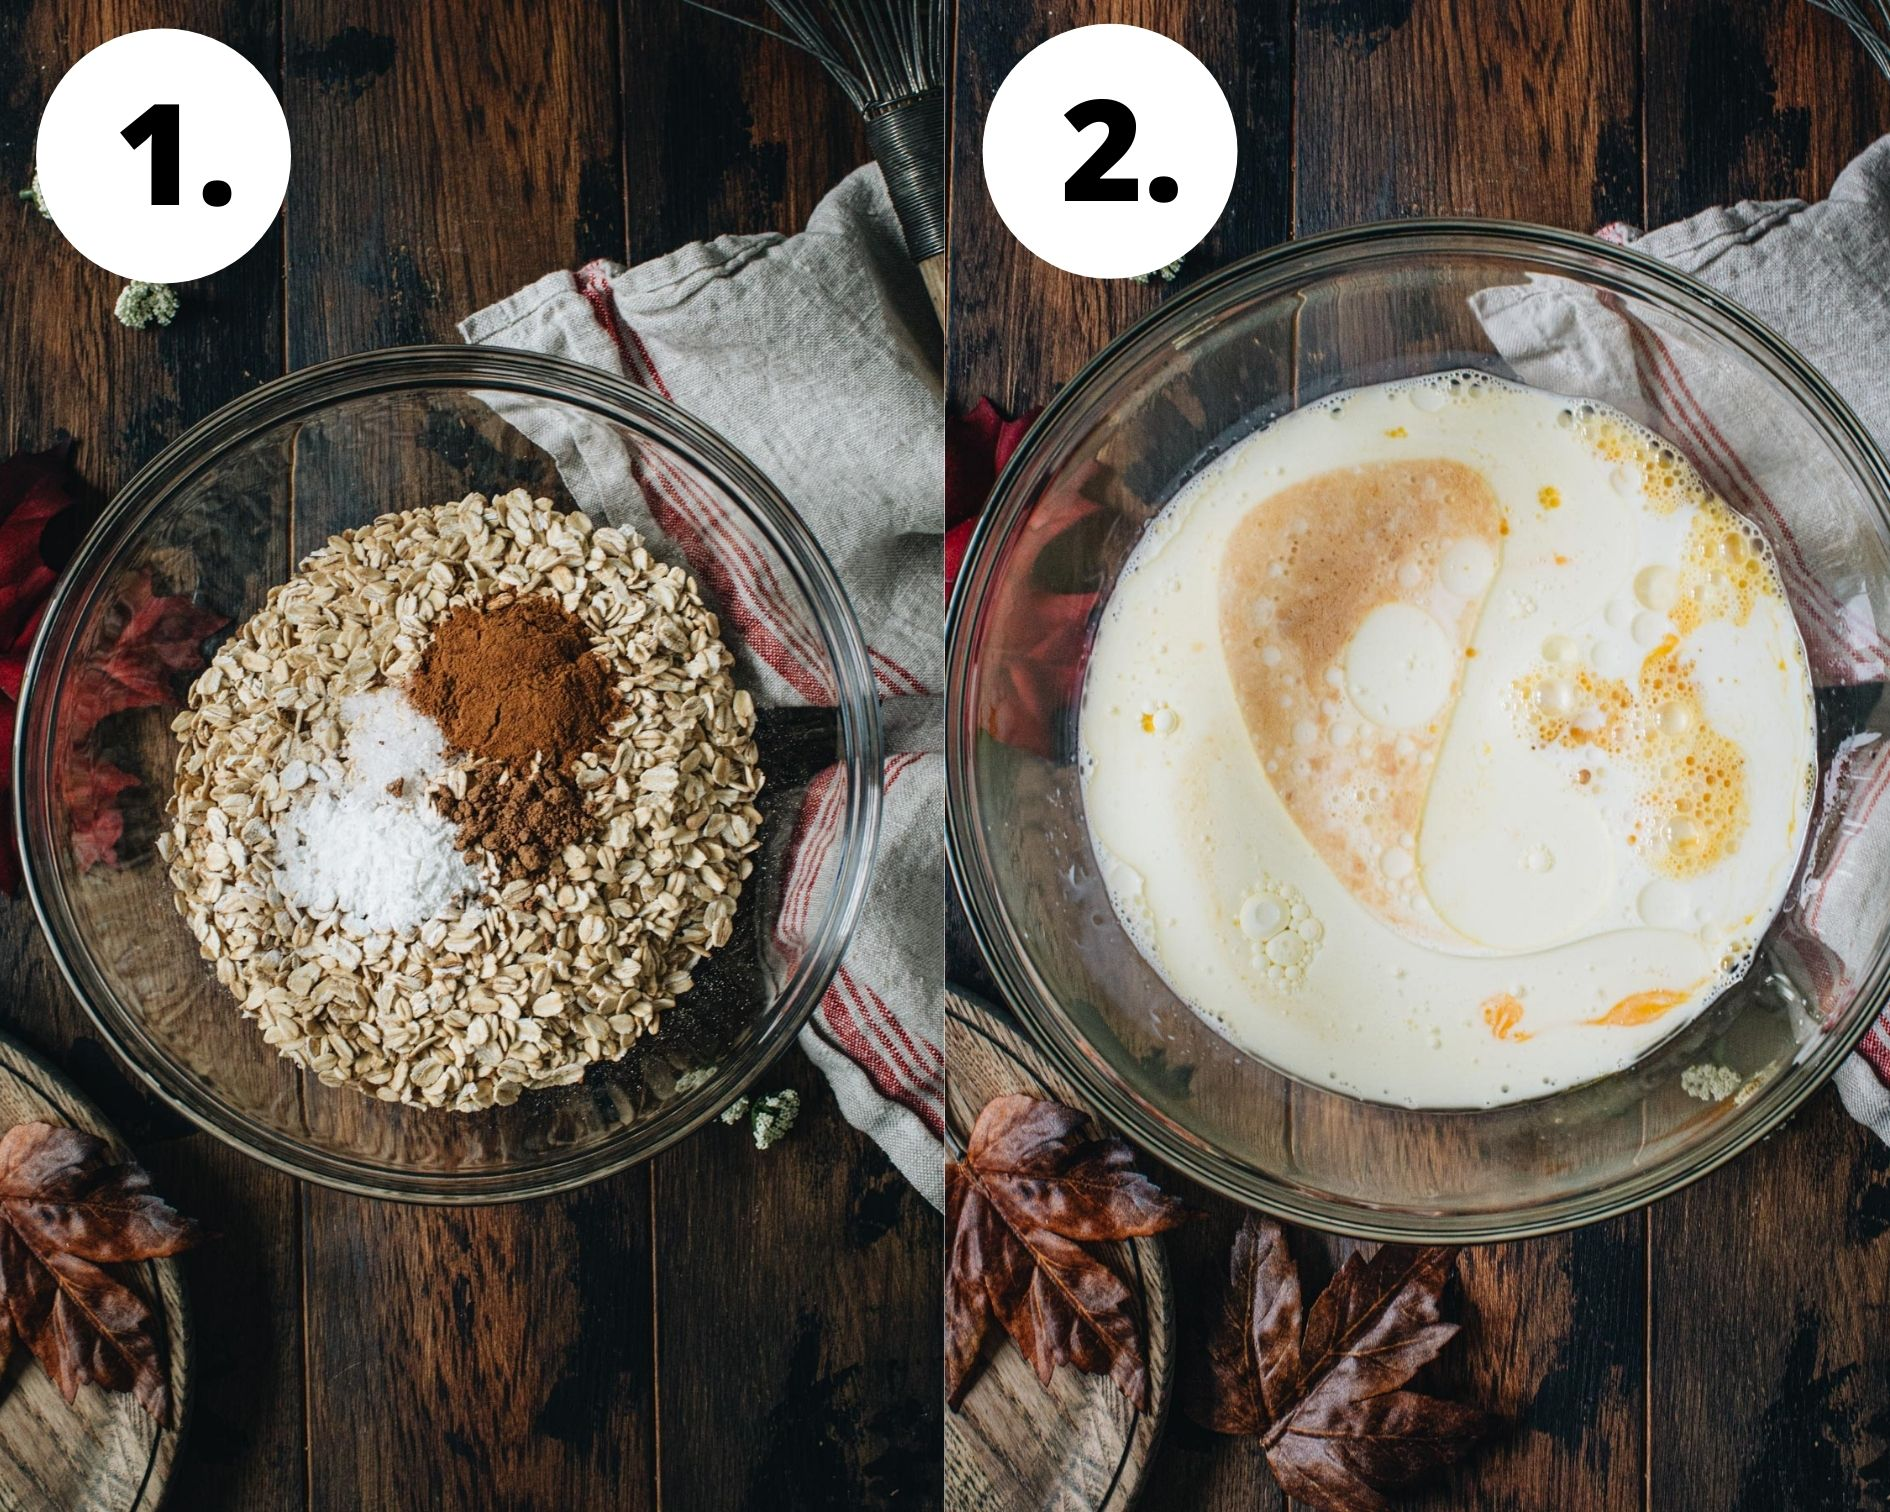 Baked apple oatmeal process steps 1 and 2.